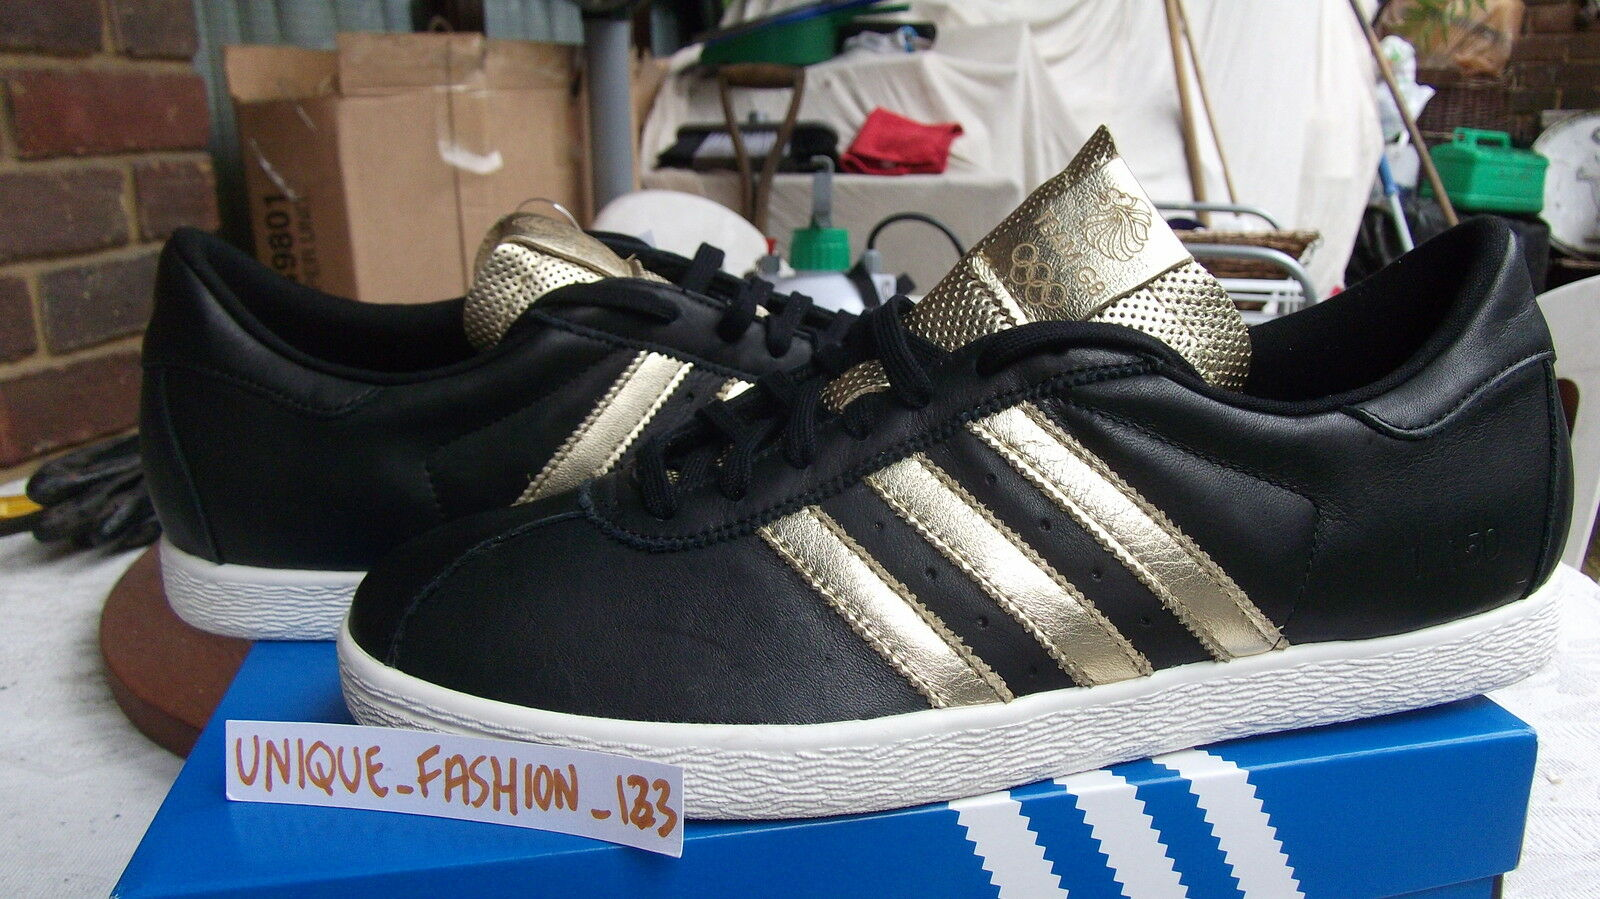 adidas tobacco team gb london london london 2012 olympic 1 / 150 couples nous 6,5 e 39 1 / 3 noel efad91